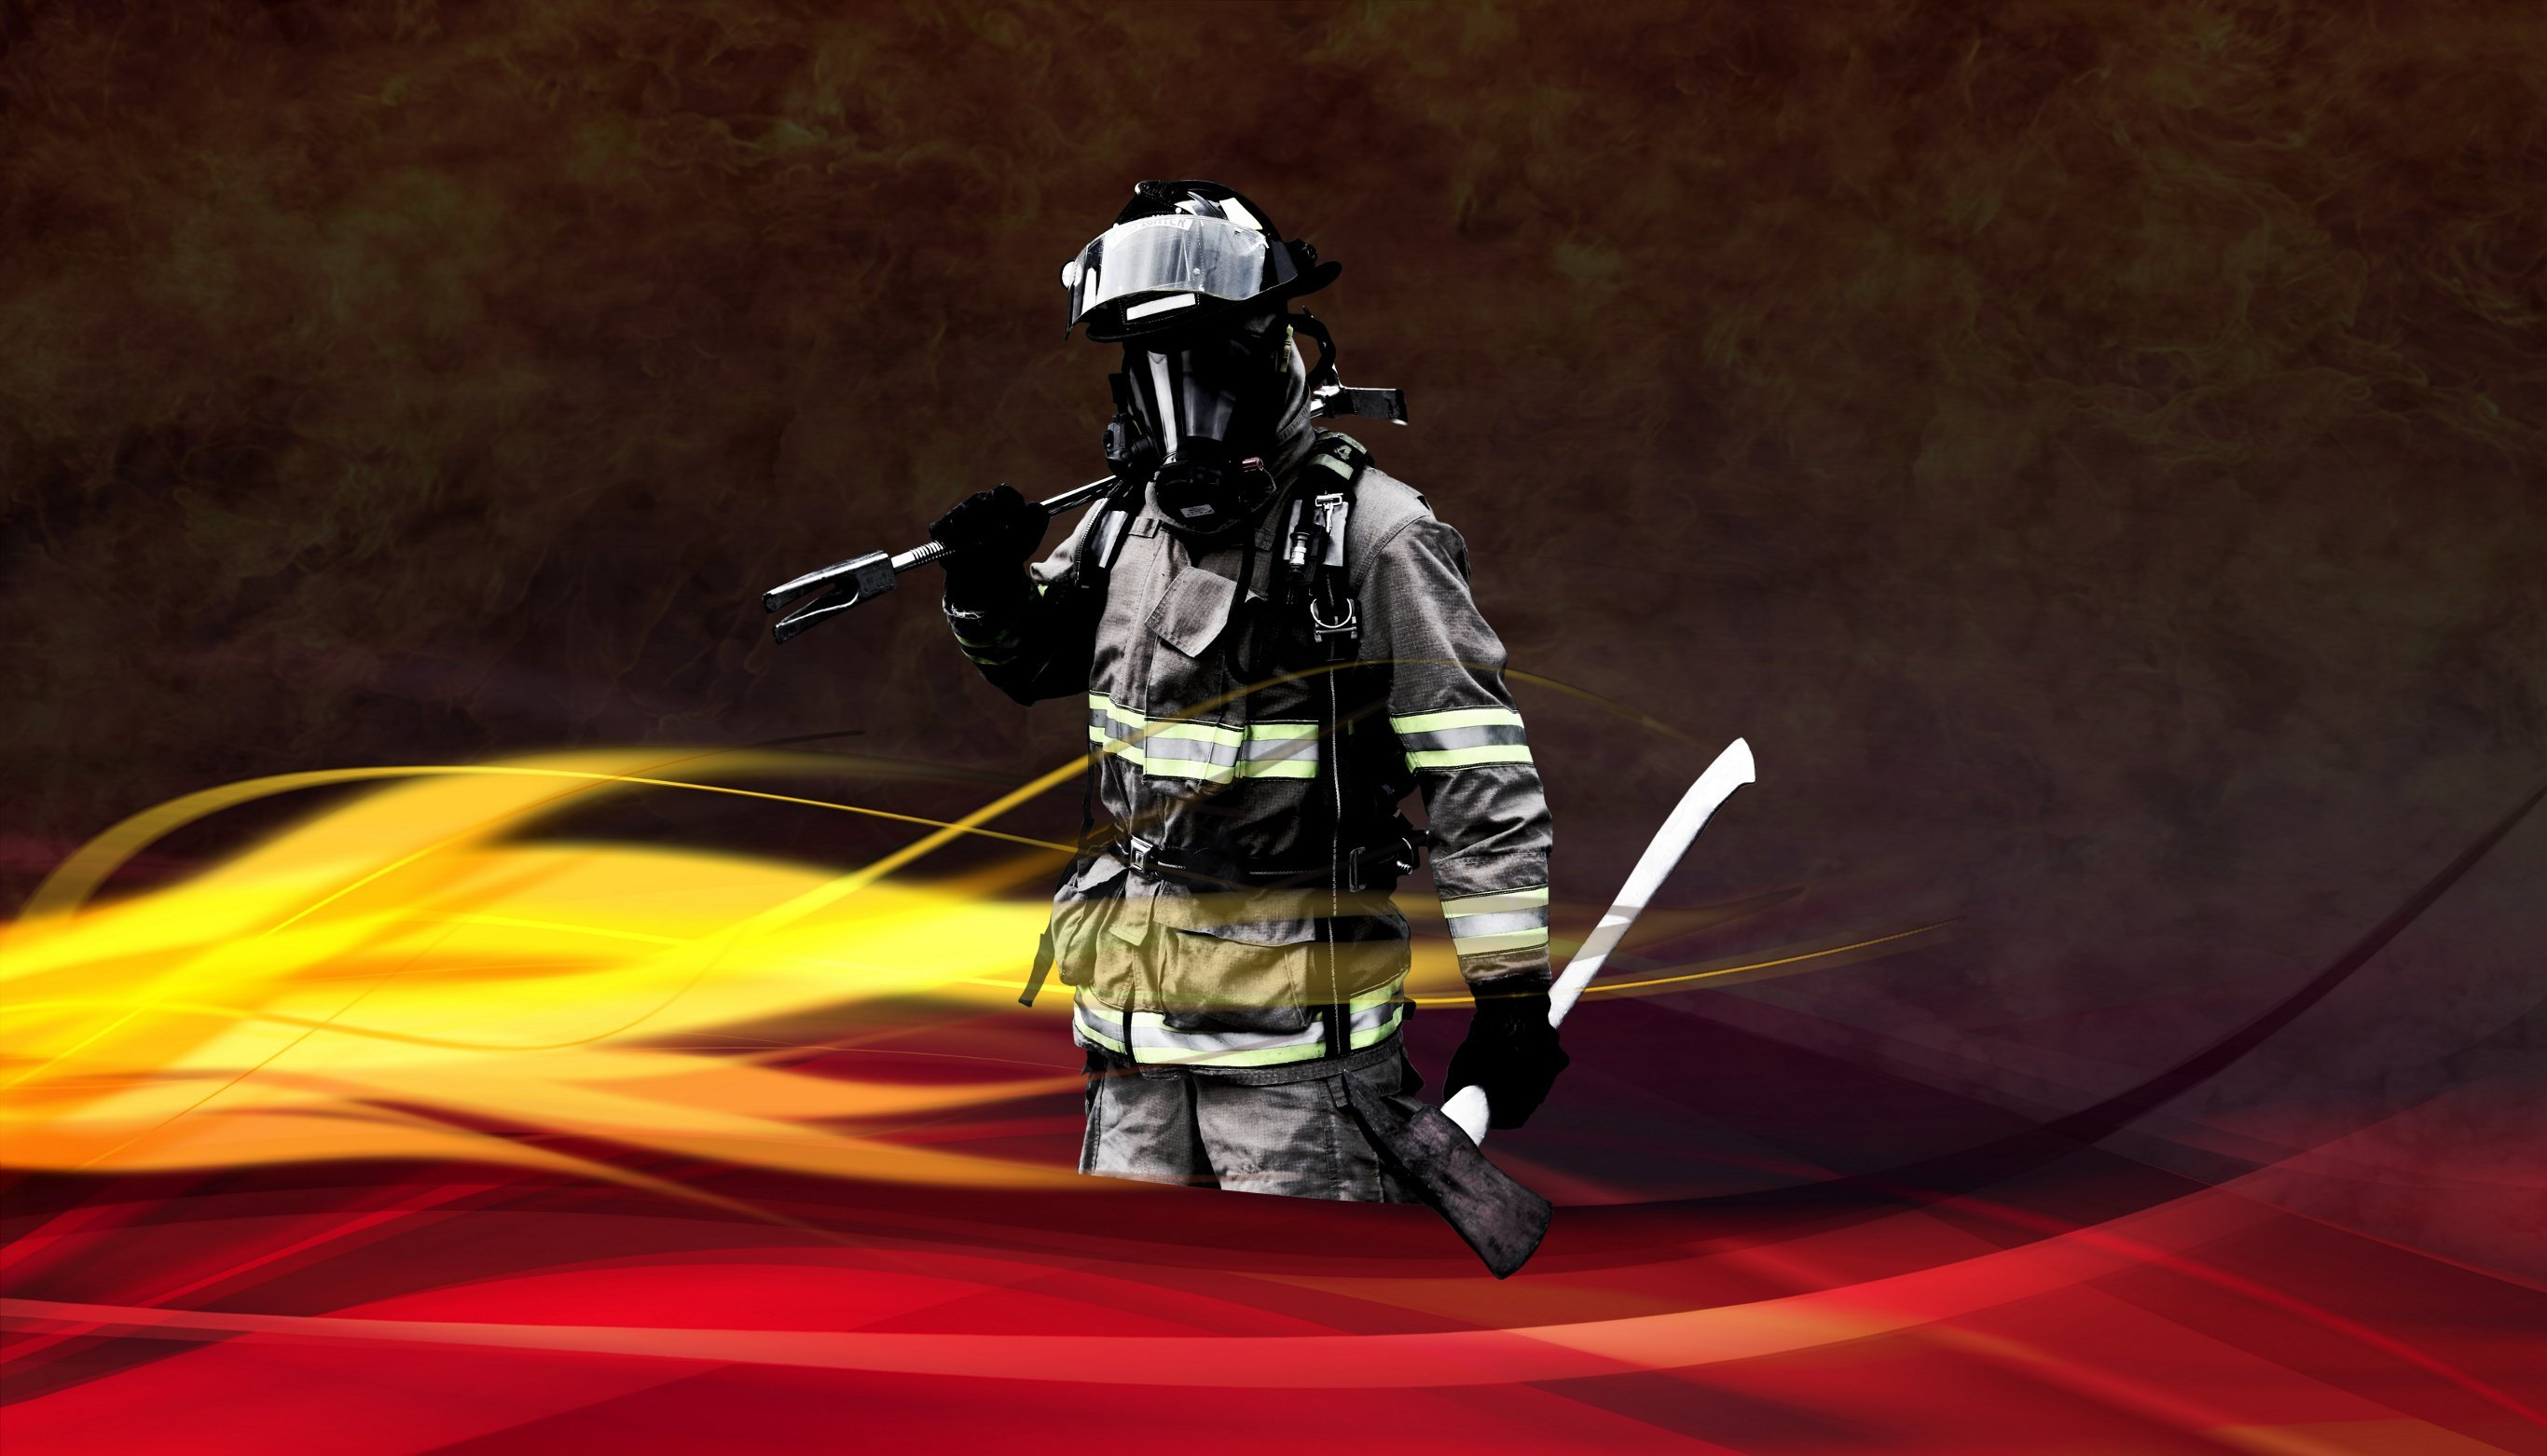 Volunteer Firefighter Wallpaper South sherman fire 2732x1562